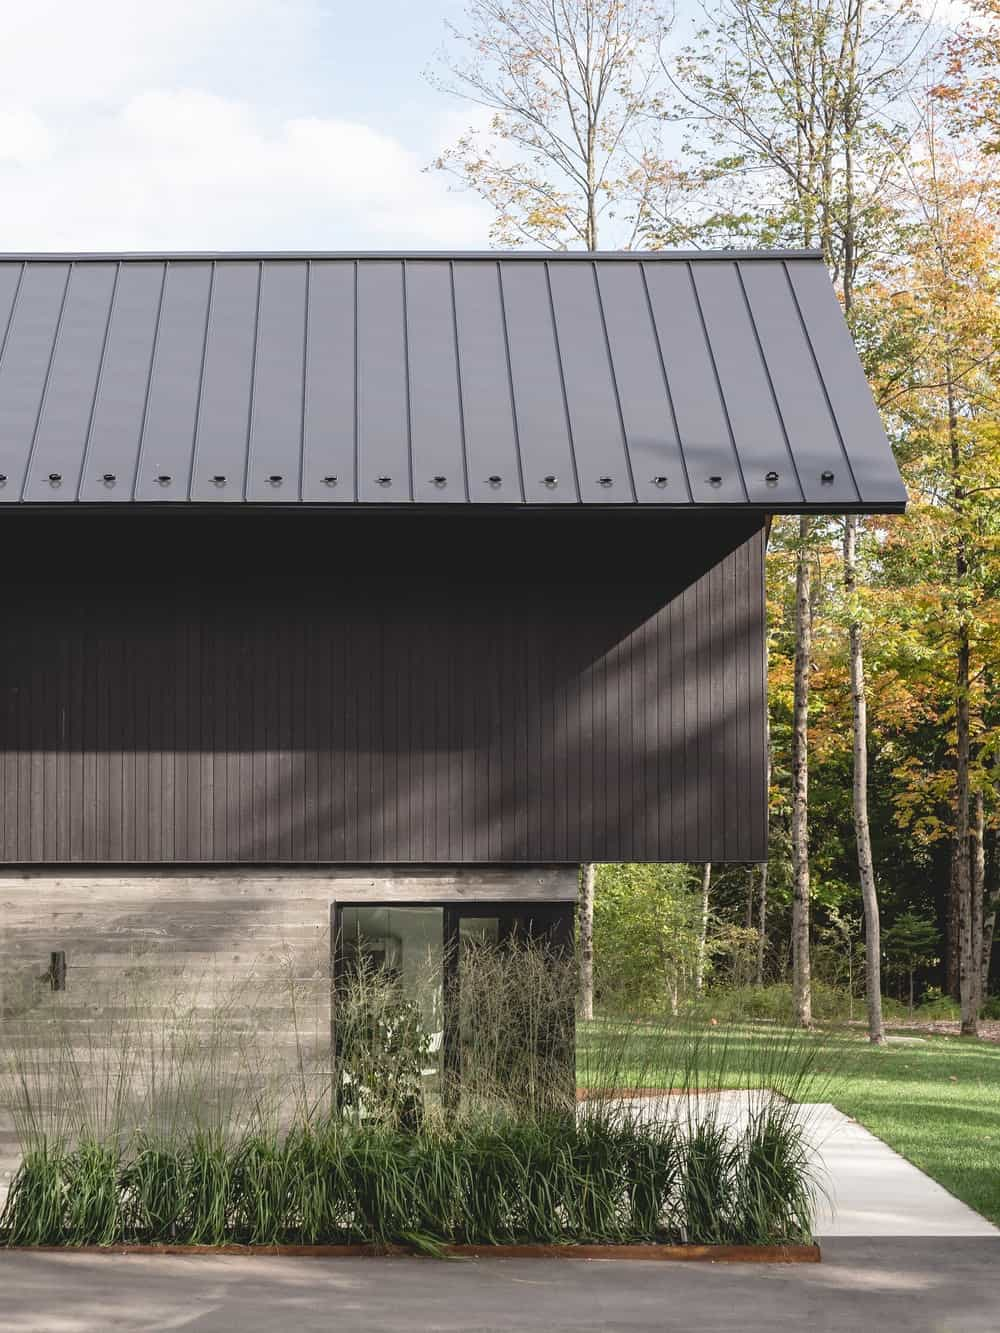 This is a close look at the main entrance of the house that has dark exterior walls on its upper levels and concrete at the base that makes the glass main door stand out.